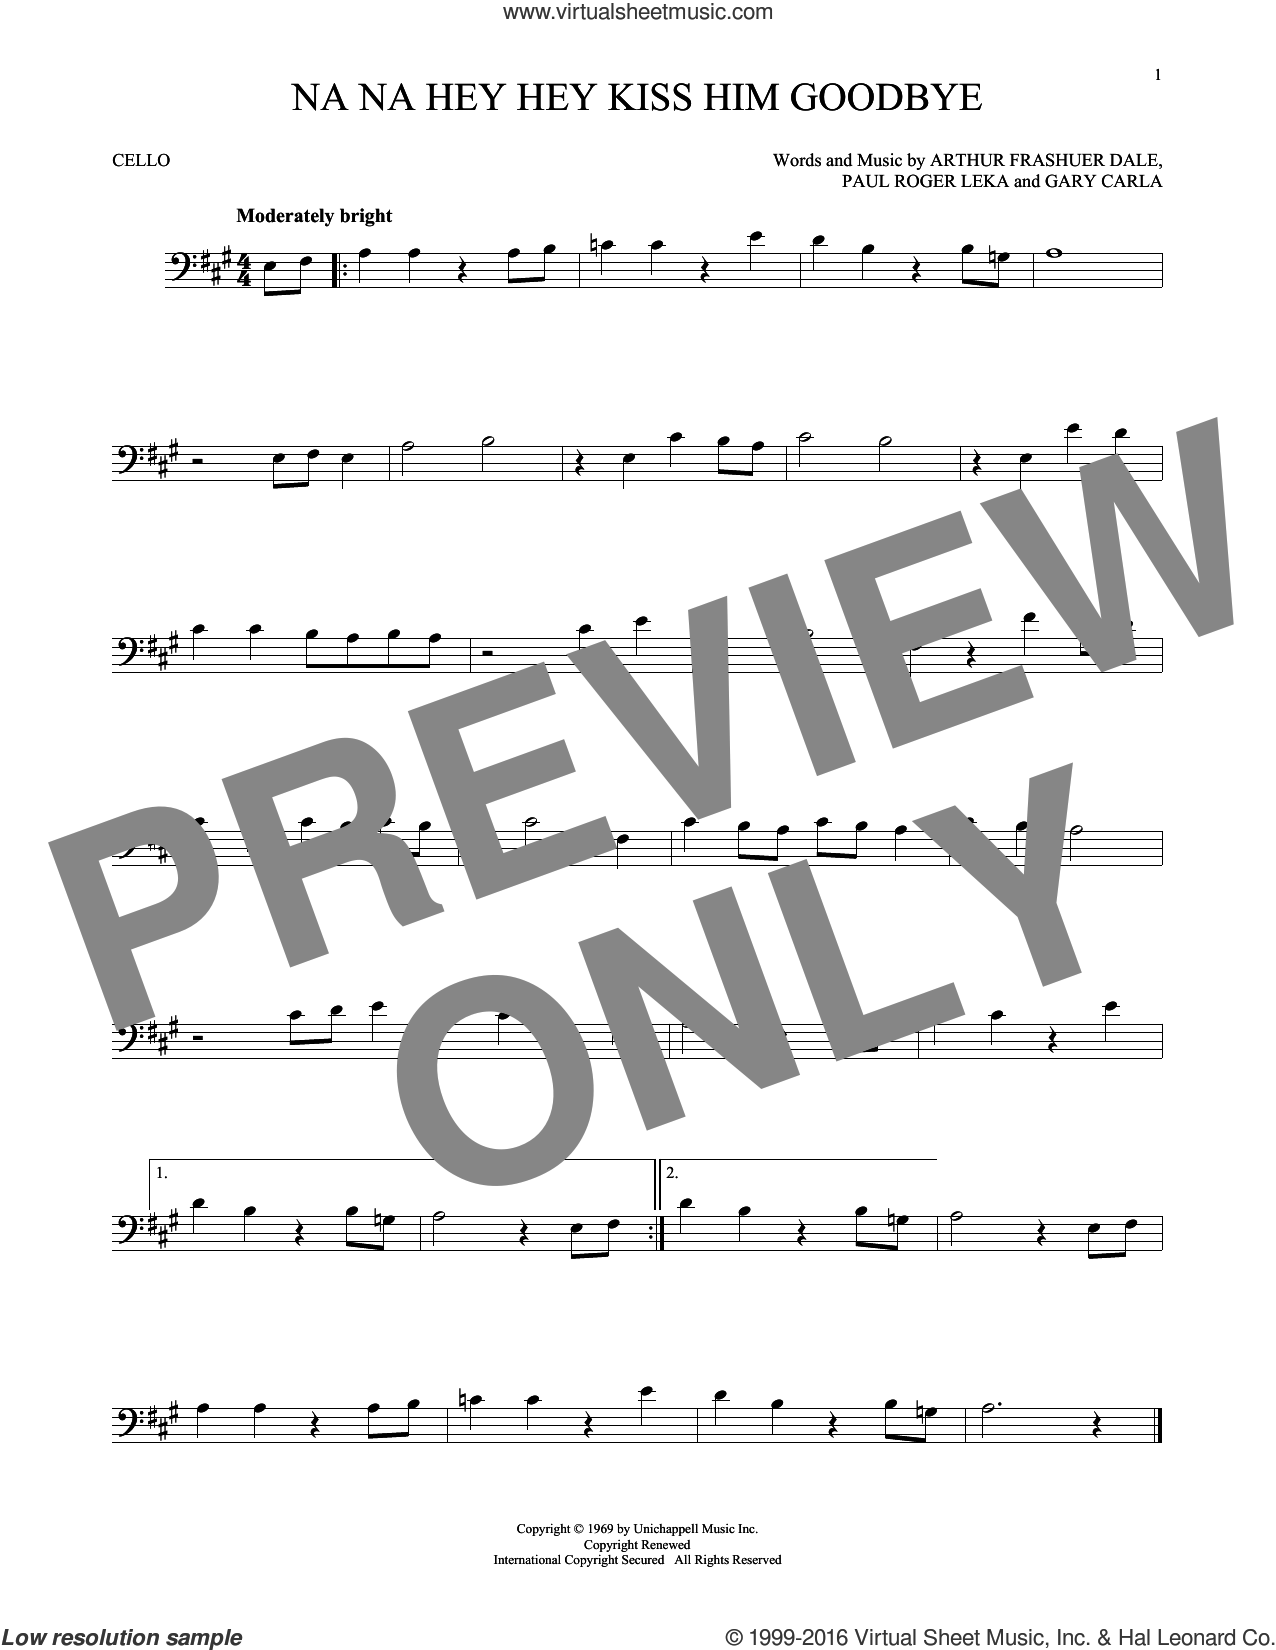 Na Na Hey Hey Kiss Him Goodbye sheet music for cello solo by Steam, Dale Frashuer, Gary De Carlo and Paul Leka, intermediate skill level